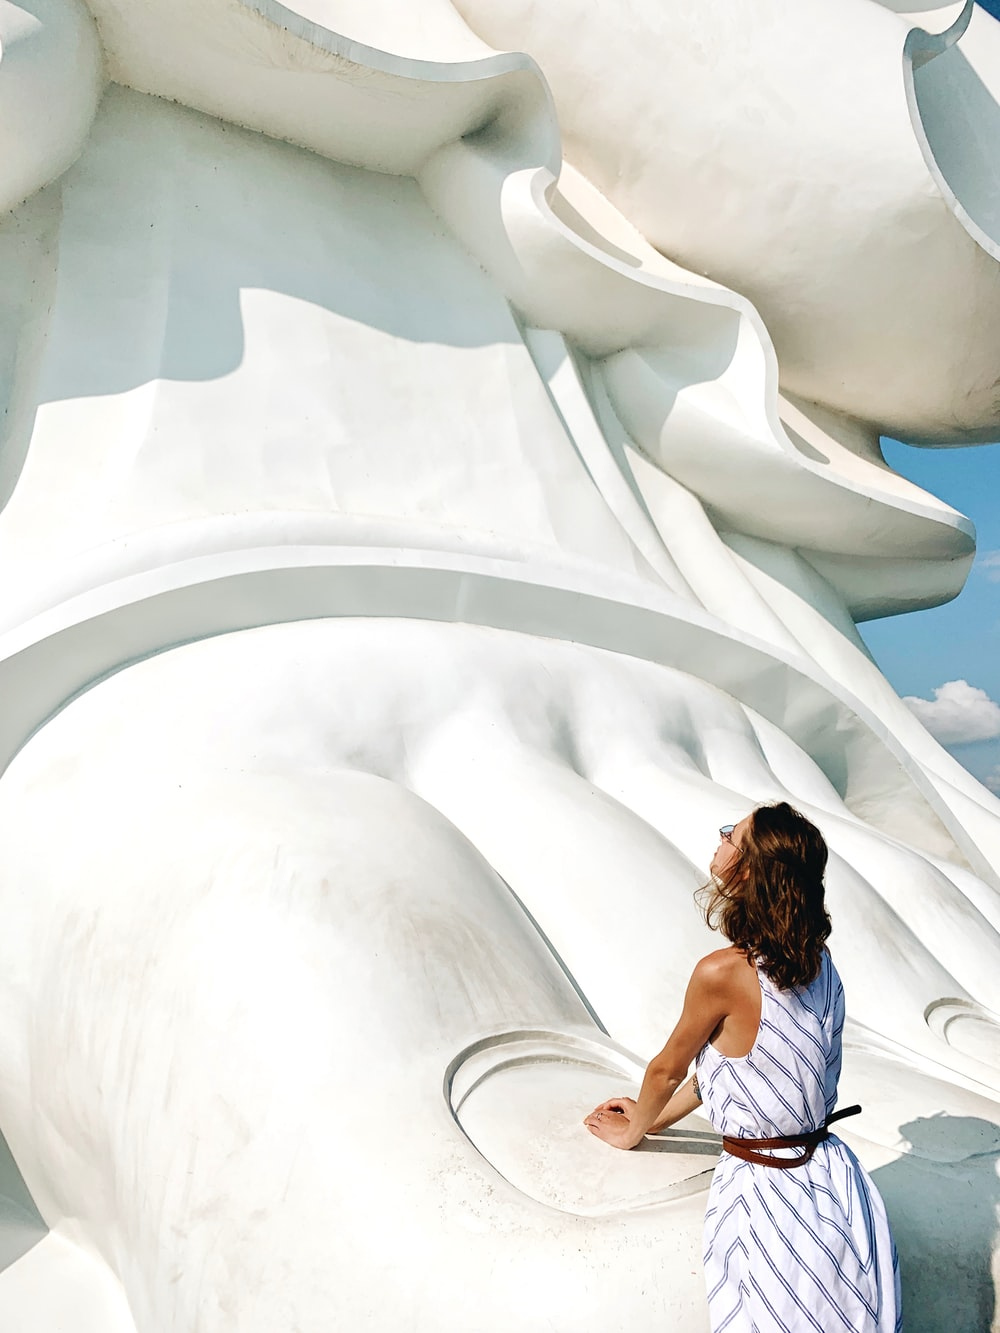 woman standing beside human foot monument during daytime